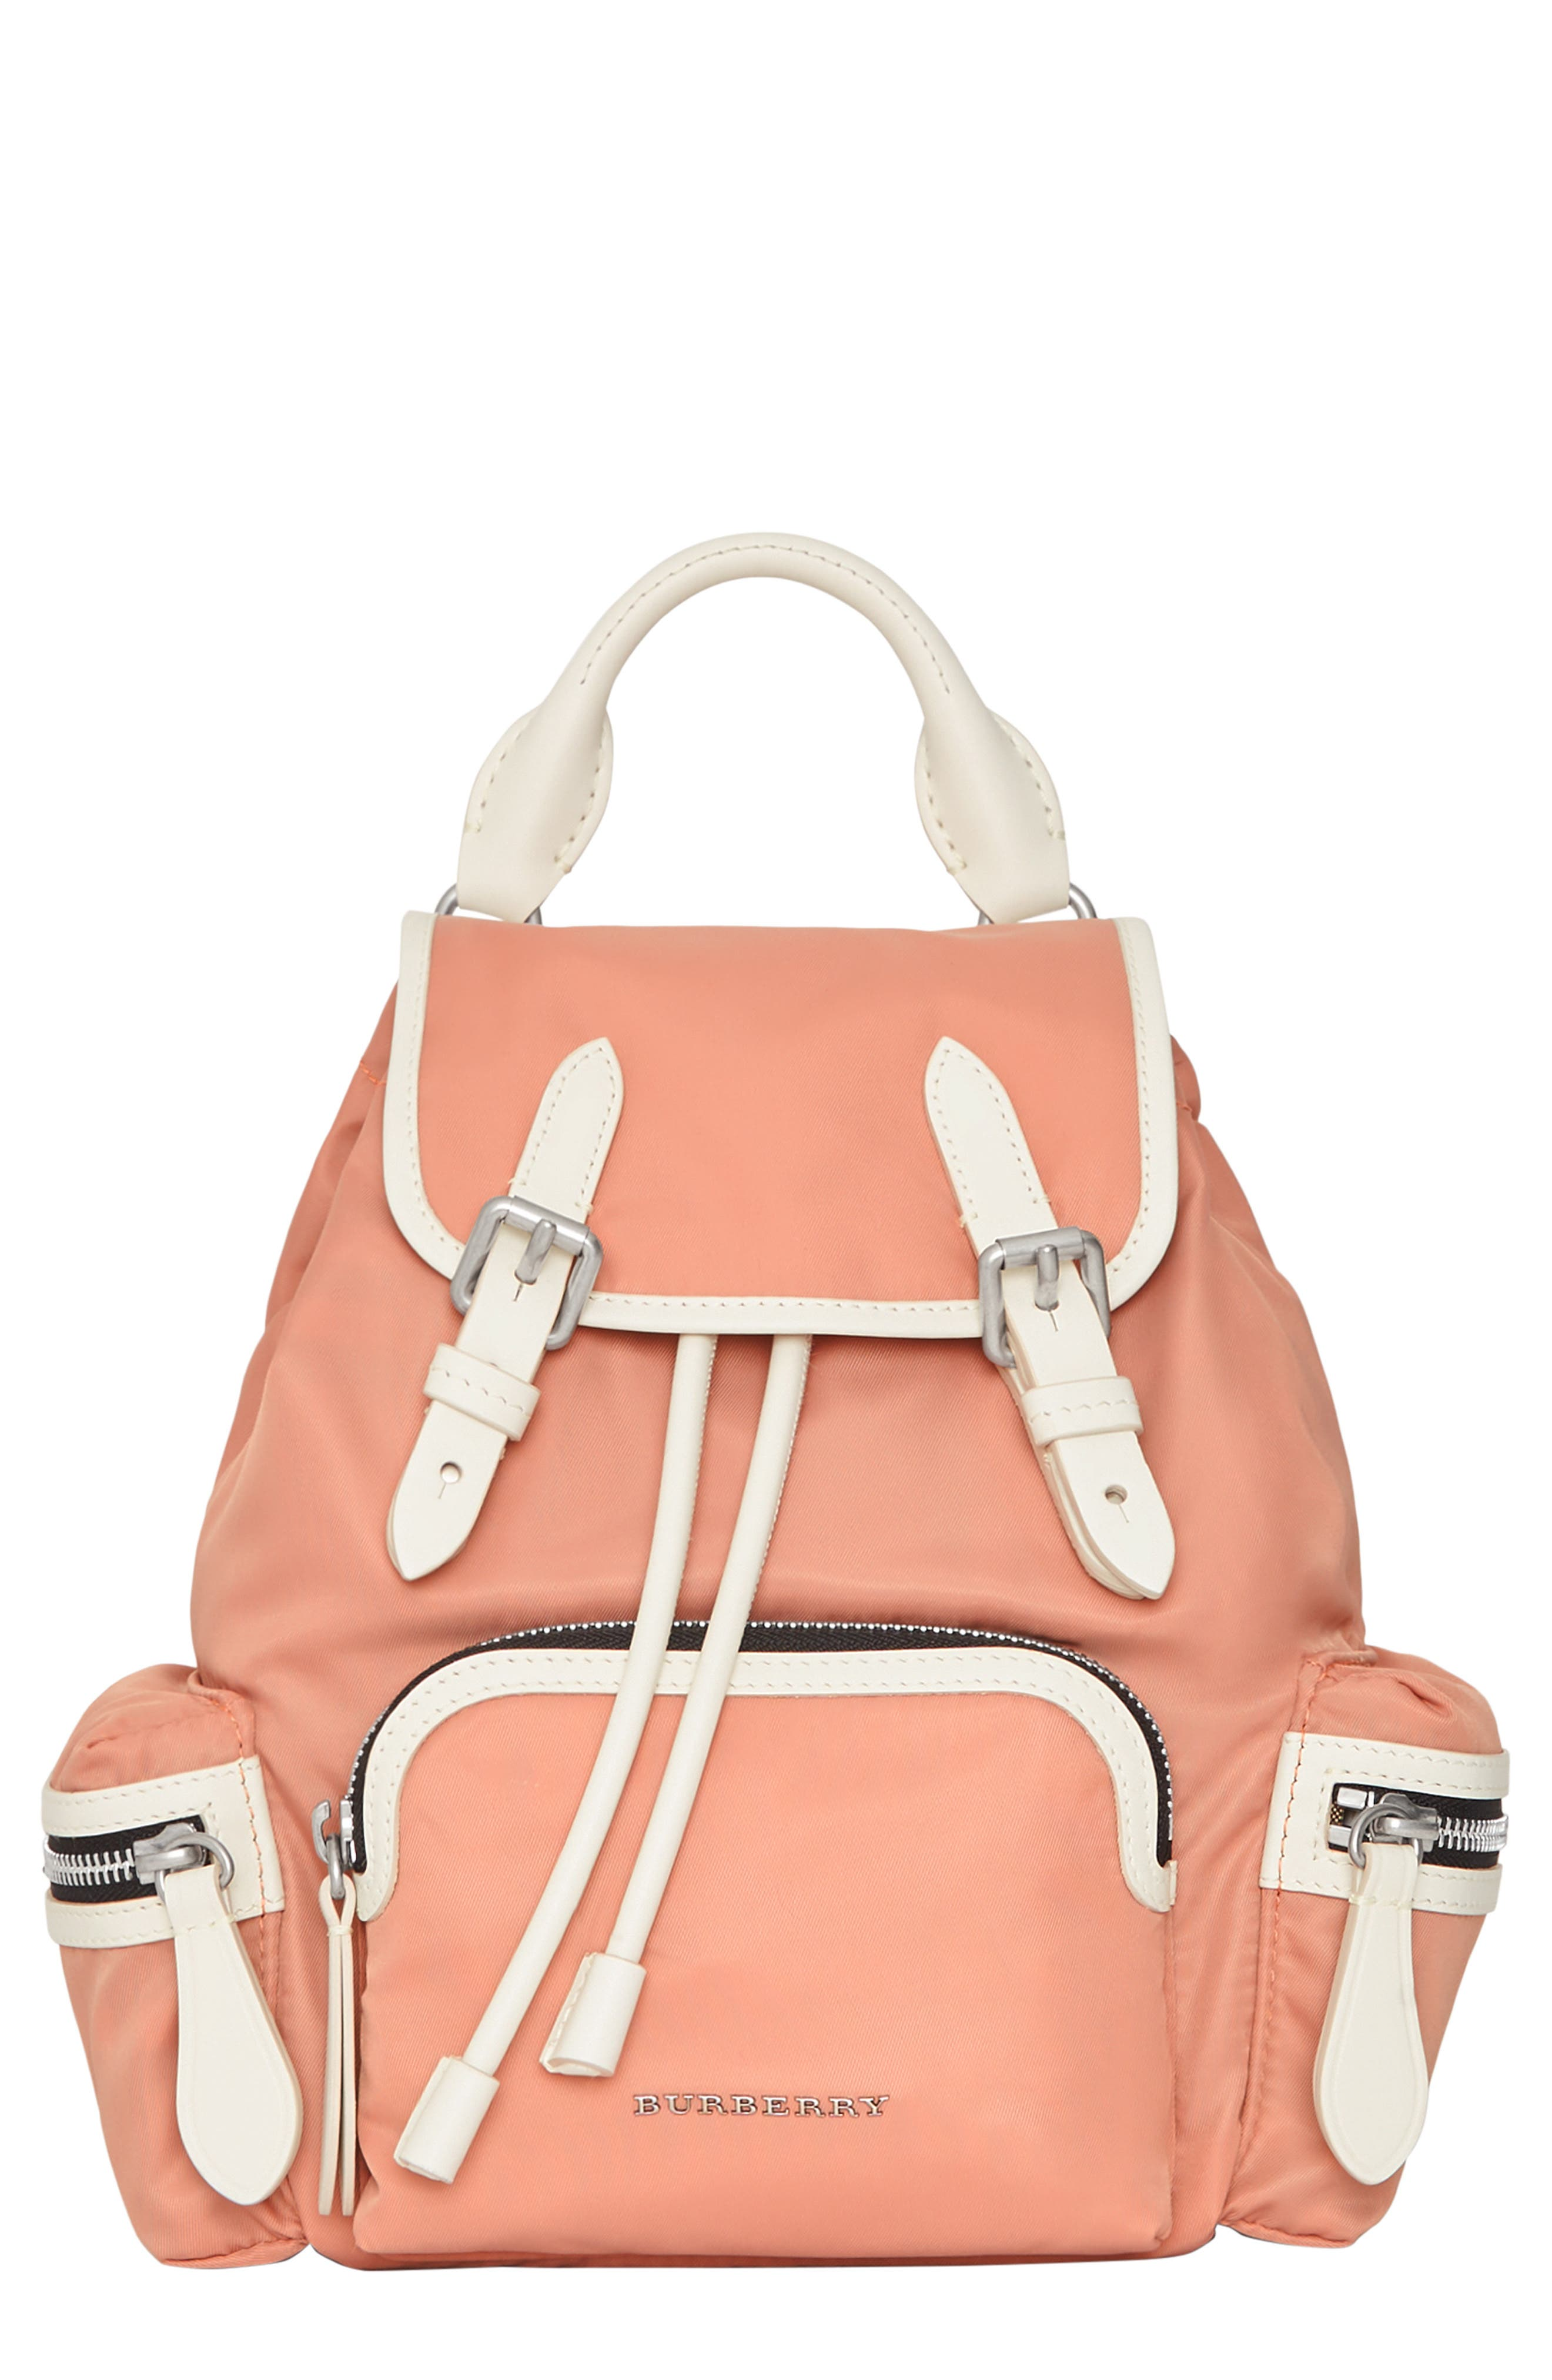 Small Rucksack Nylon Backpack,                             Main thumbnail 1, color,                             POWDER PINK